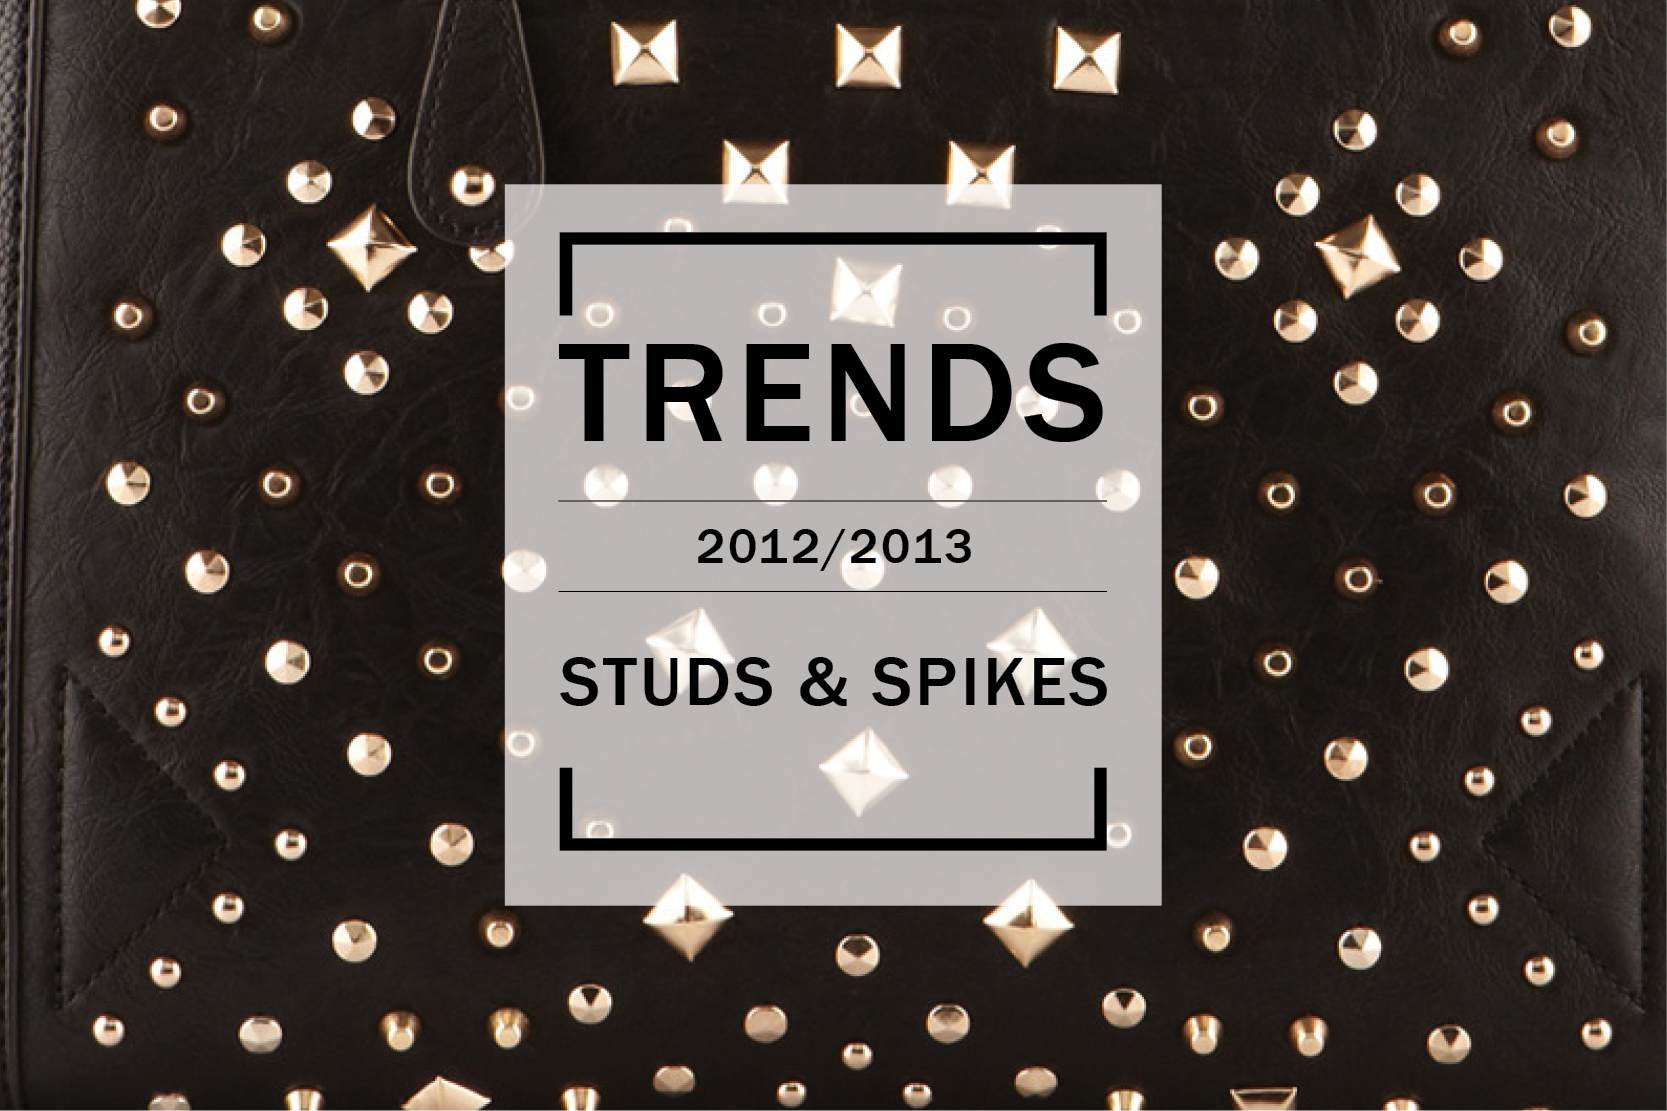 Trends - Studs & spikes